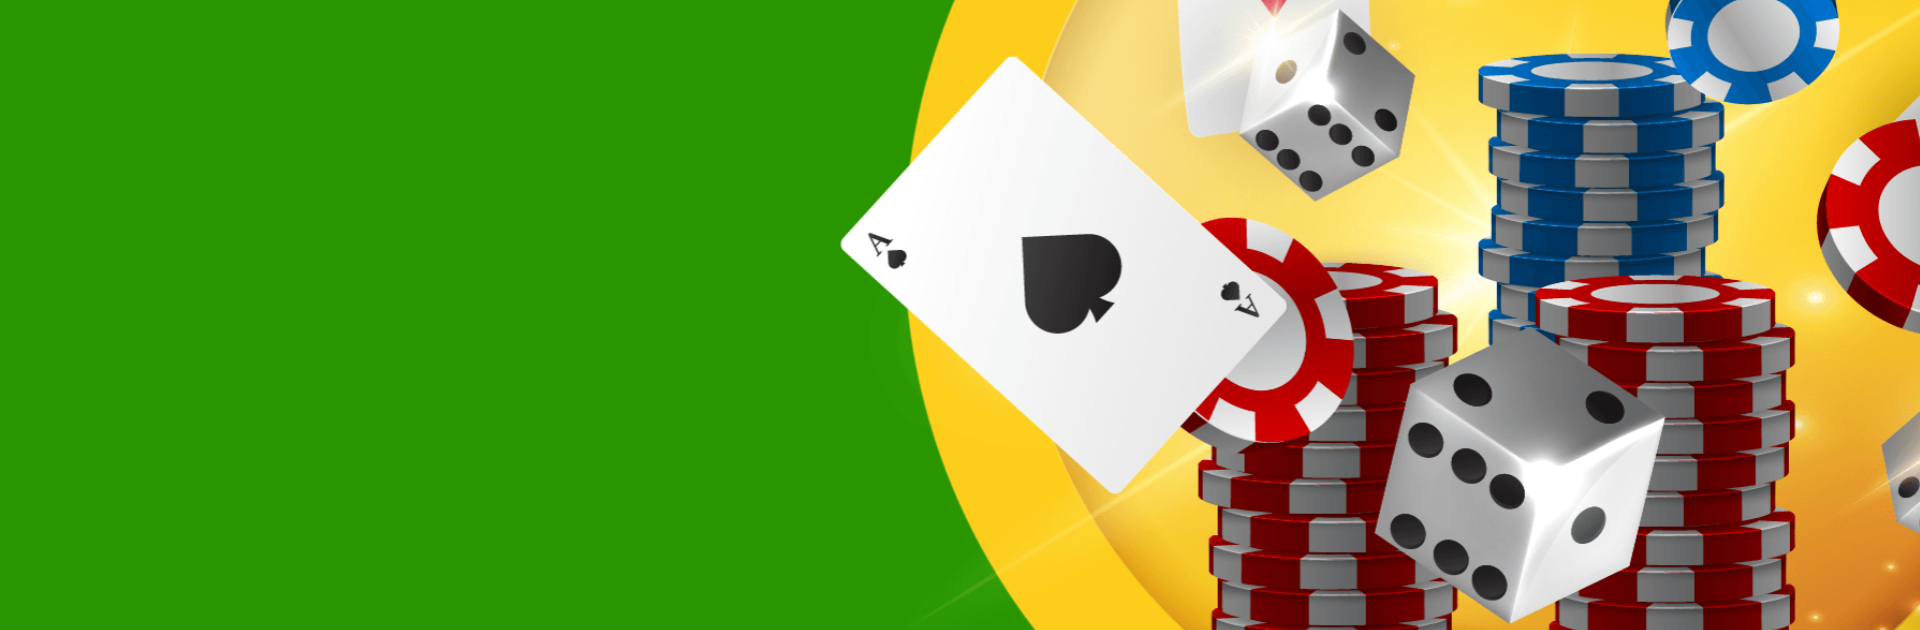 joe fortune online pokies and casino table games